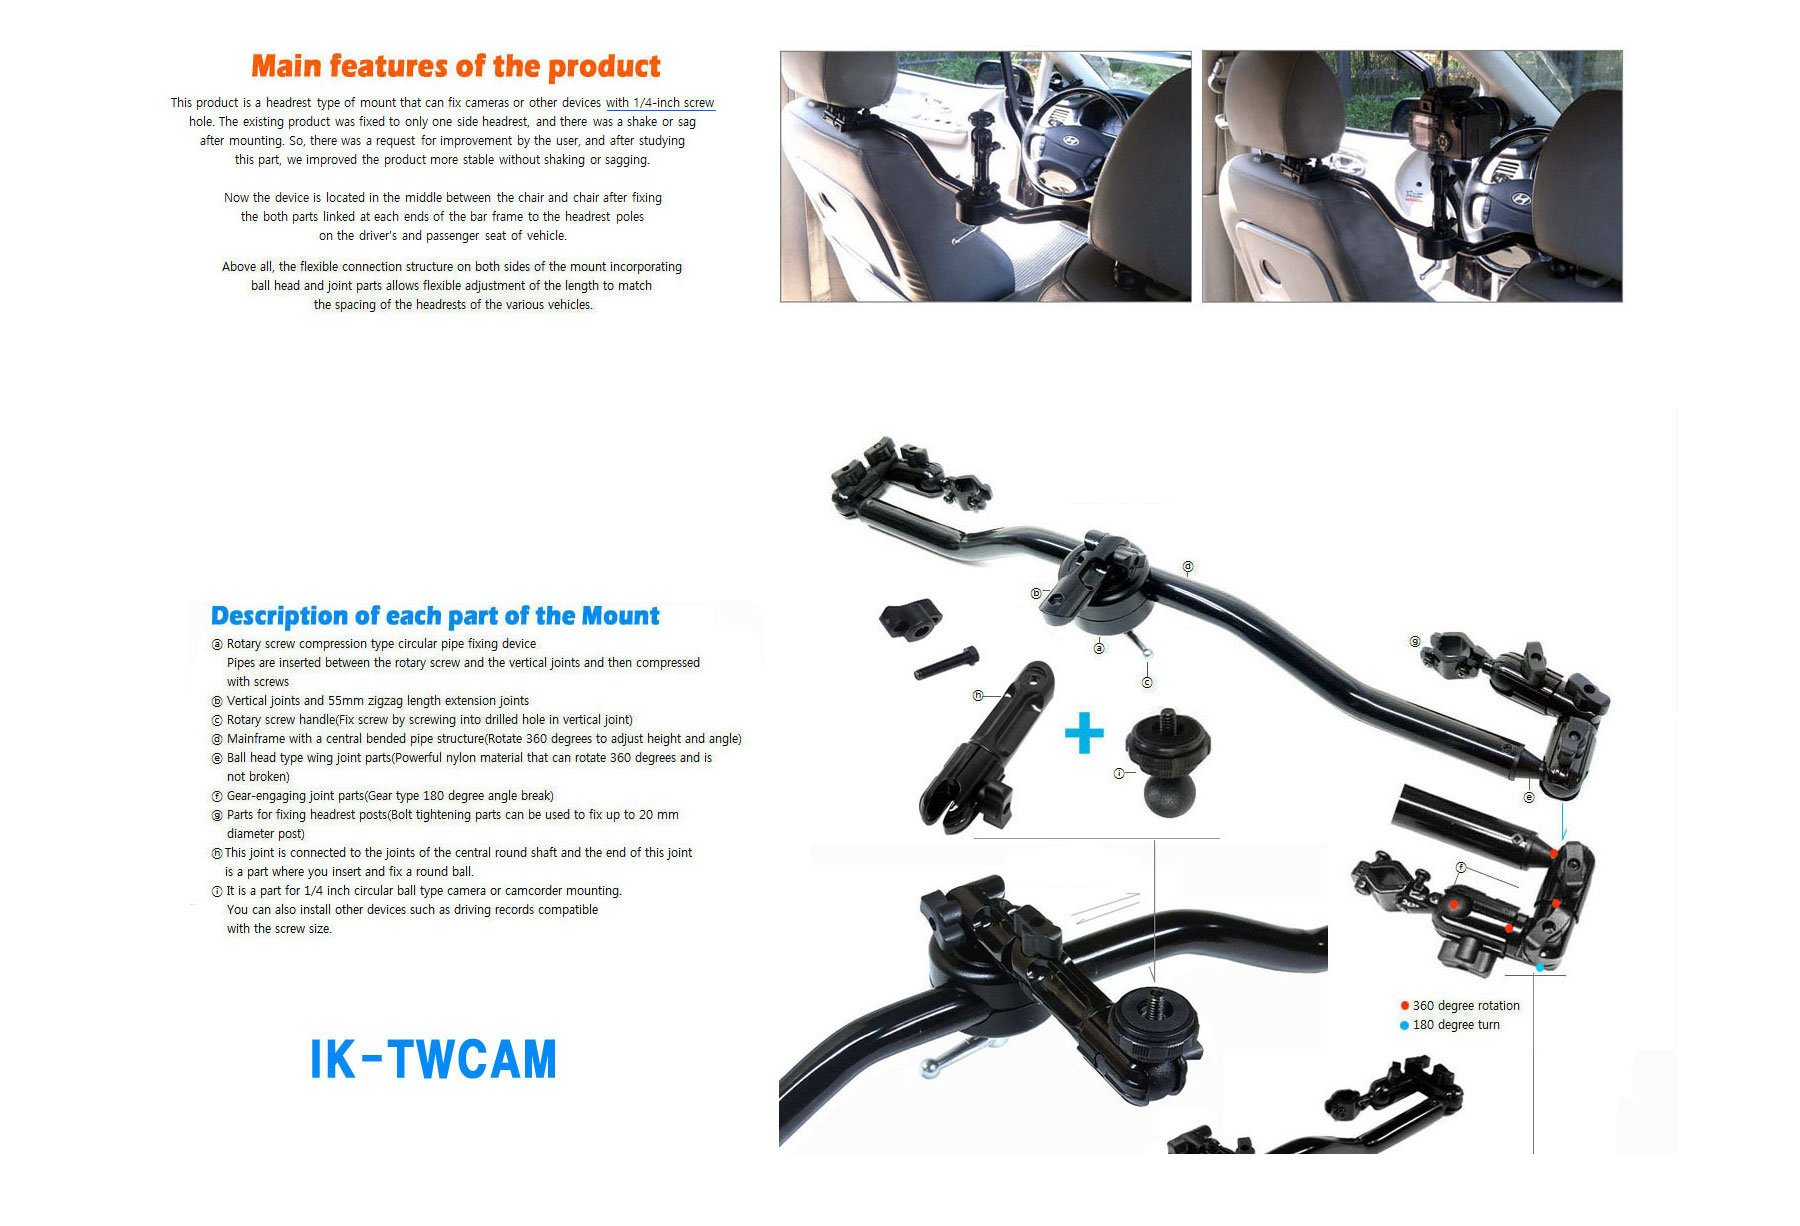 a bar type headrest mount fix on both headrests for mounting camcorder action cam camera mount with all metal sturdy pipe added both side flexible part and 1/4 inches thread as a cam connecting part by Top Mount